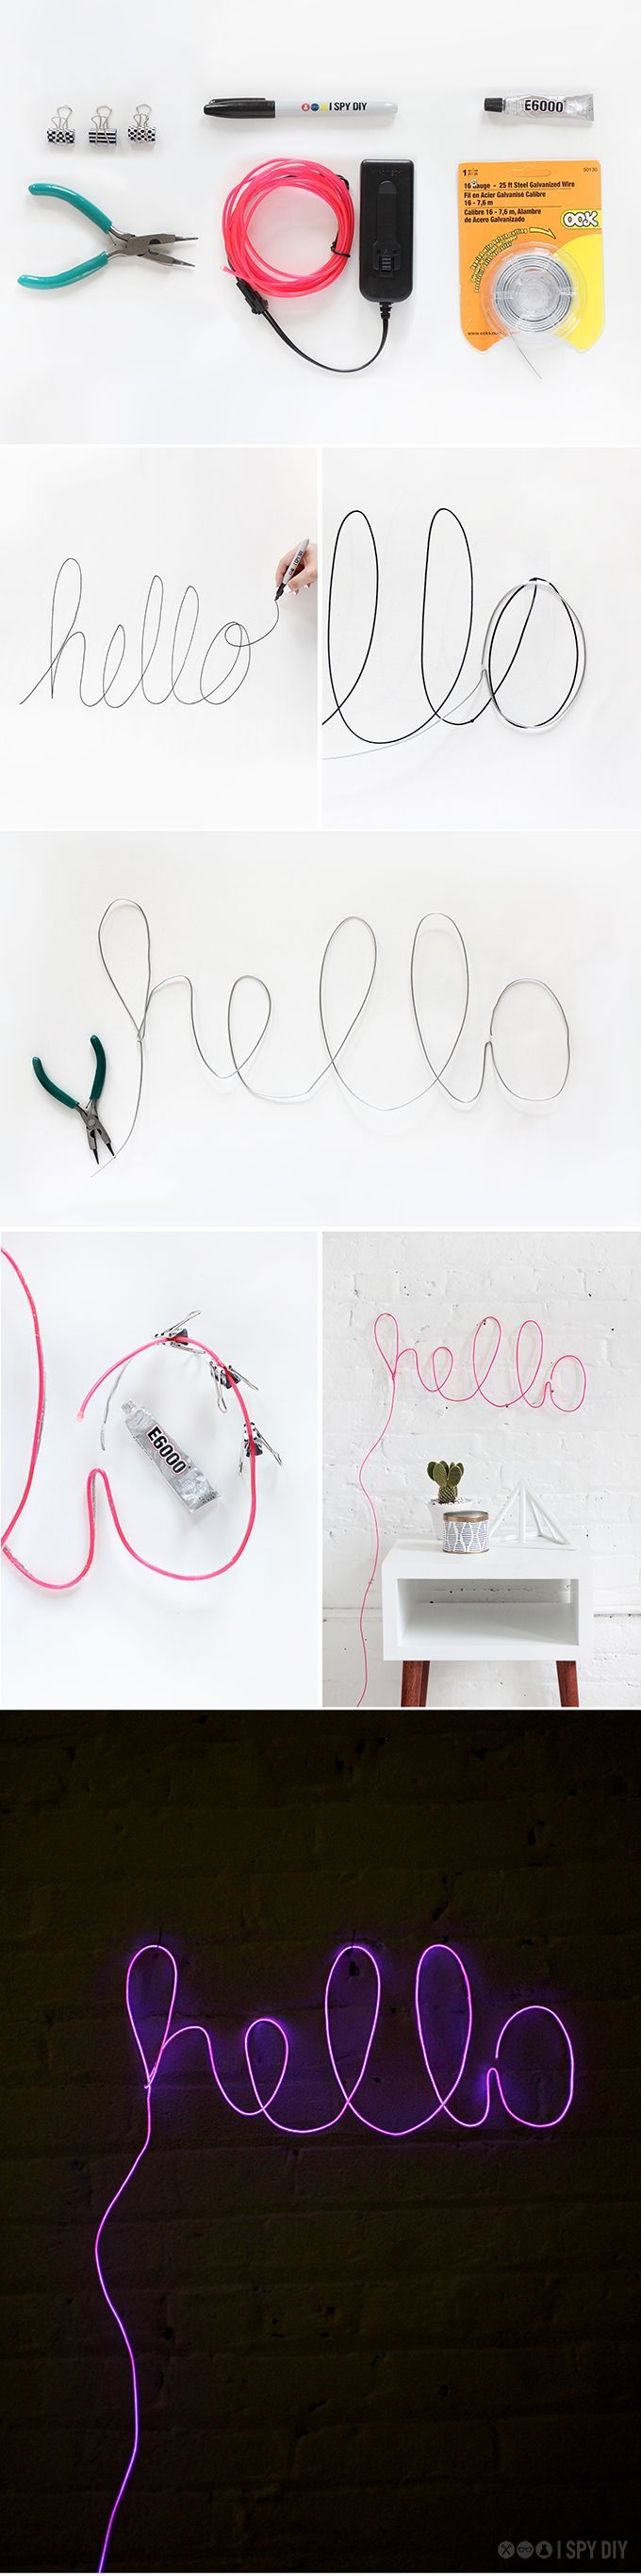 MY DIY | Neon Letter Light | I SPY DIY